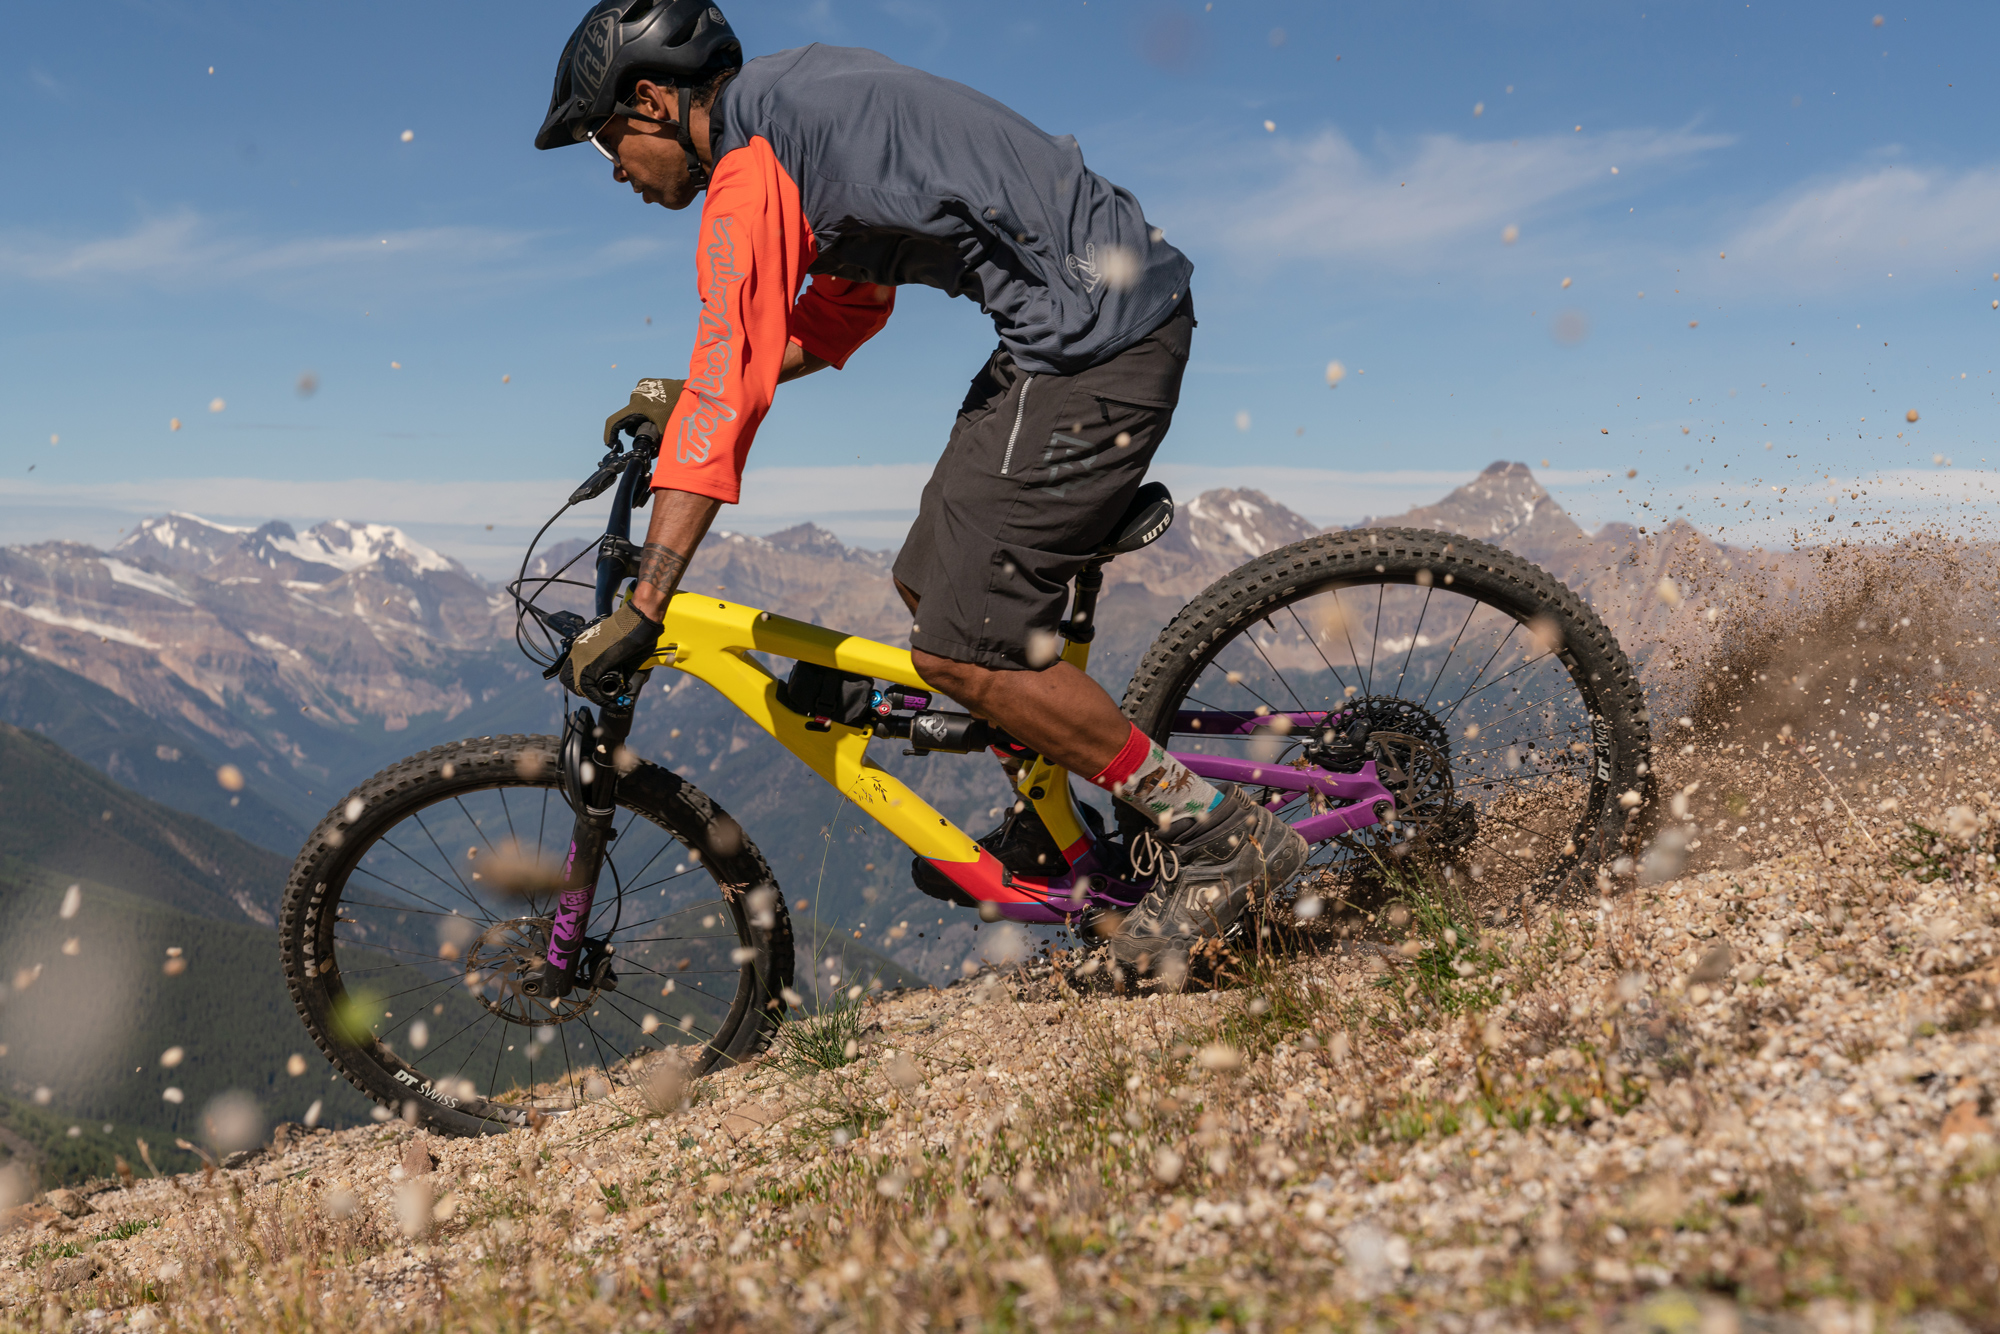 Salsa Releases 2 New Shred-Ready 29ers - Expedition Portal